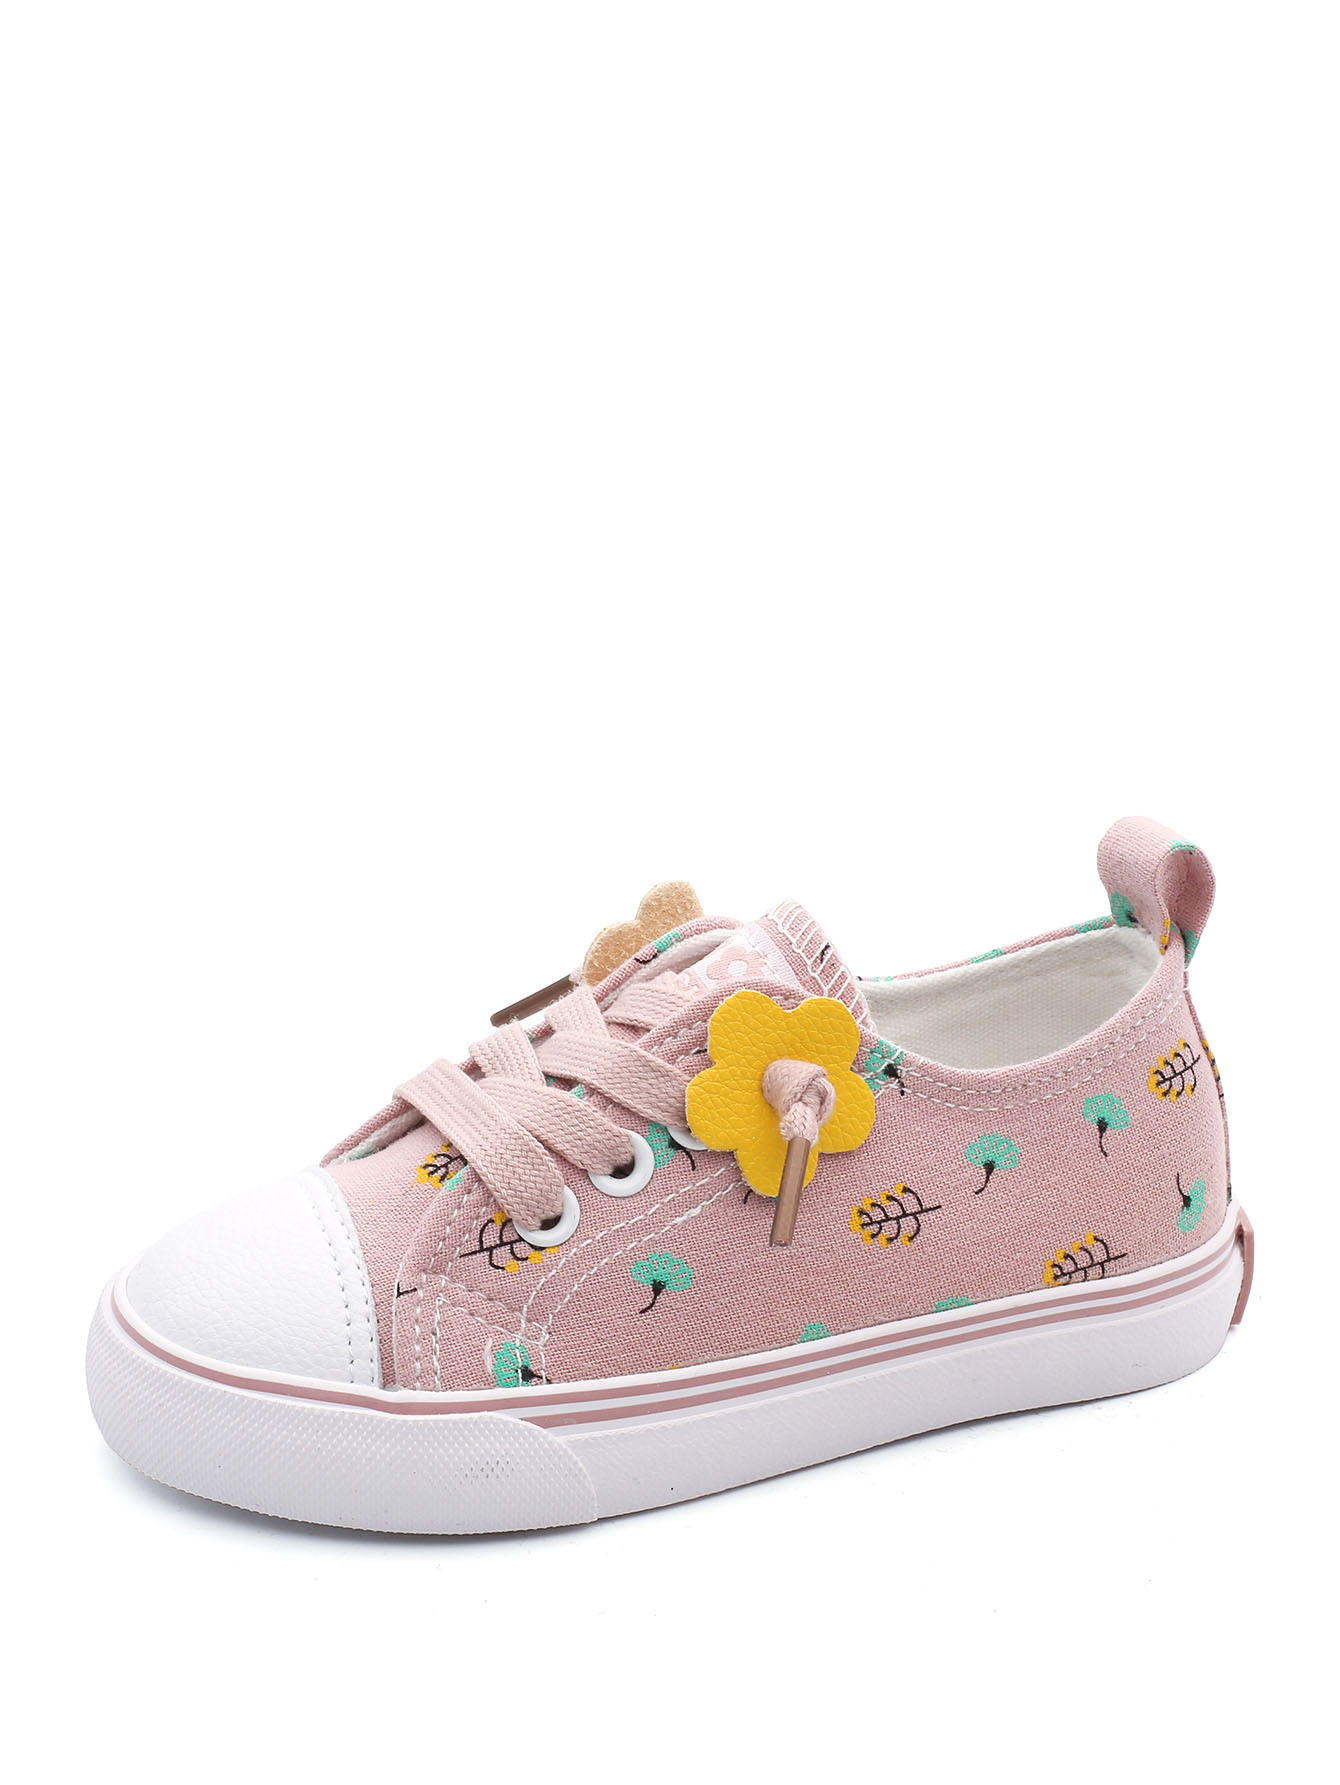 Kids Floral Pattern Lace-up Sneakers null, ,